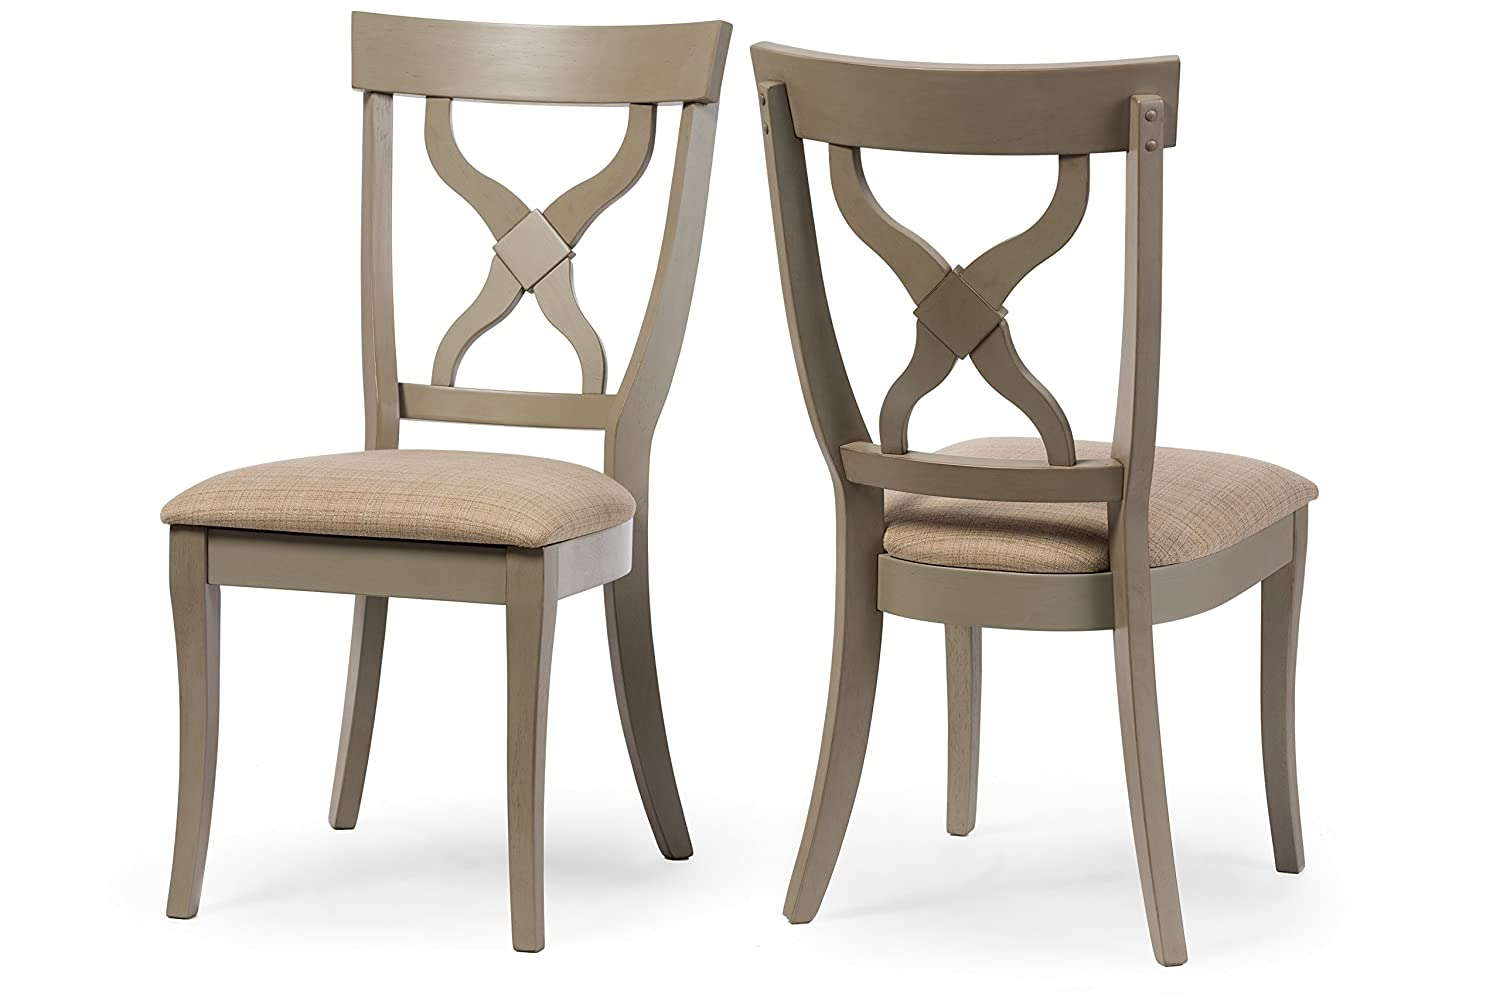 Wholesale Interiors 2 Piece Balmoral Shabby Antique X-Back Dining Side Chair Set, Oak Distressed Light Grey